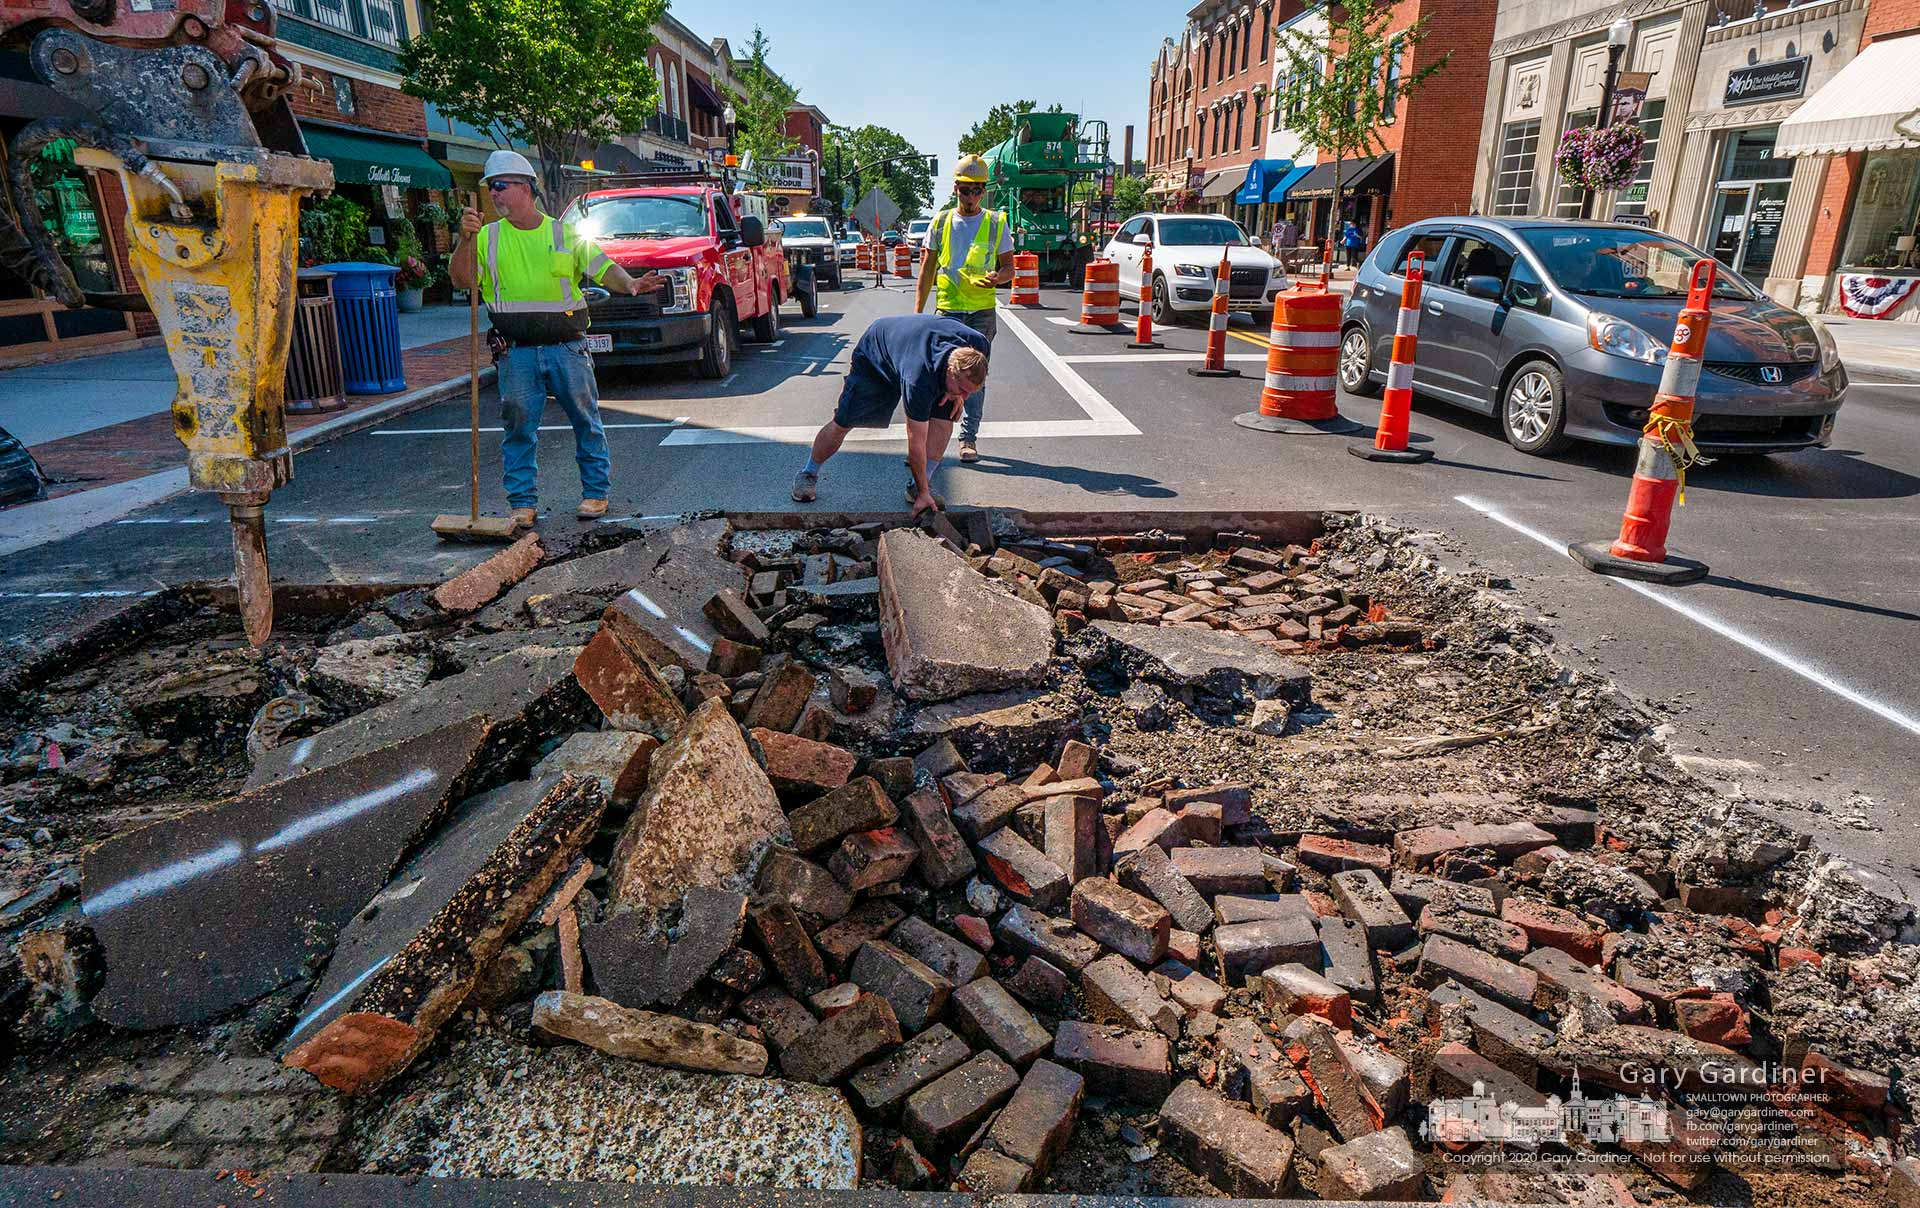 A man reaches to retrieve a brick ripped up from below State Street at Main Street where the next phase of the Uptown Improvement Project includes new brick crosswalks. My Final Photo for Aug. 7, 2020.